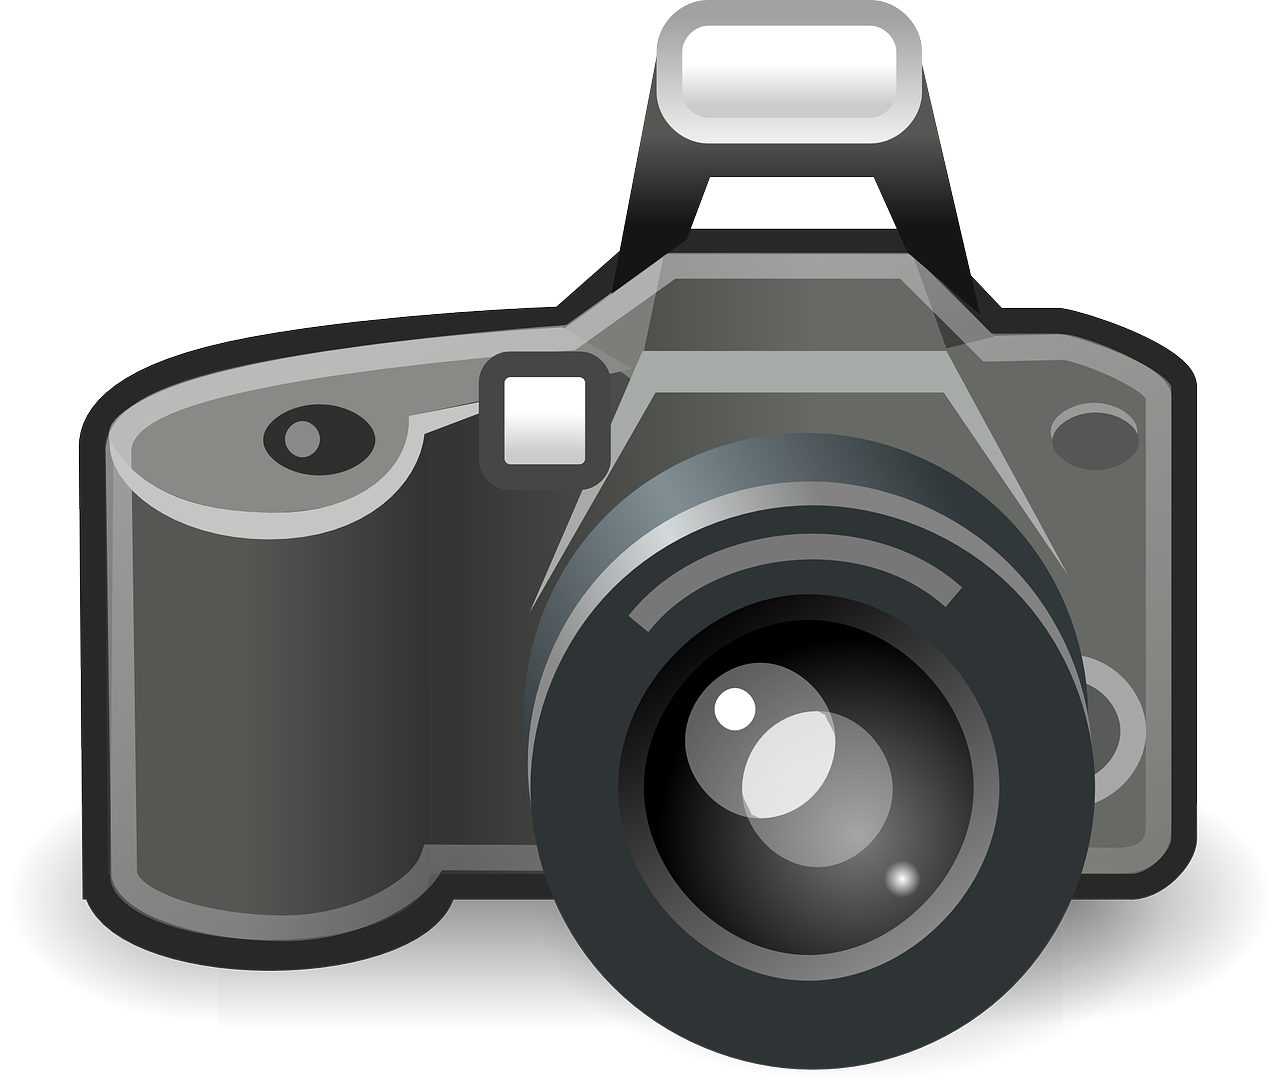 camera,photo,digital camera,photography,photograph,photographer,image,photos,slr,icon,free vector graphics,free pictures, free photos, free images, royalty free, free illustrations, public domain